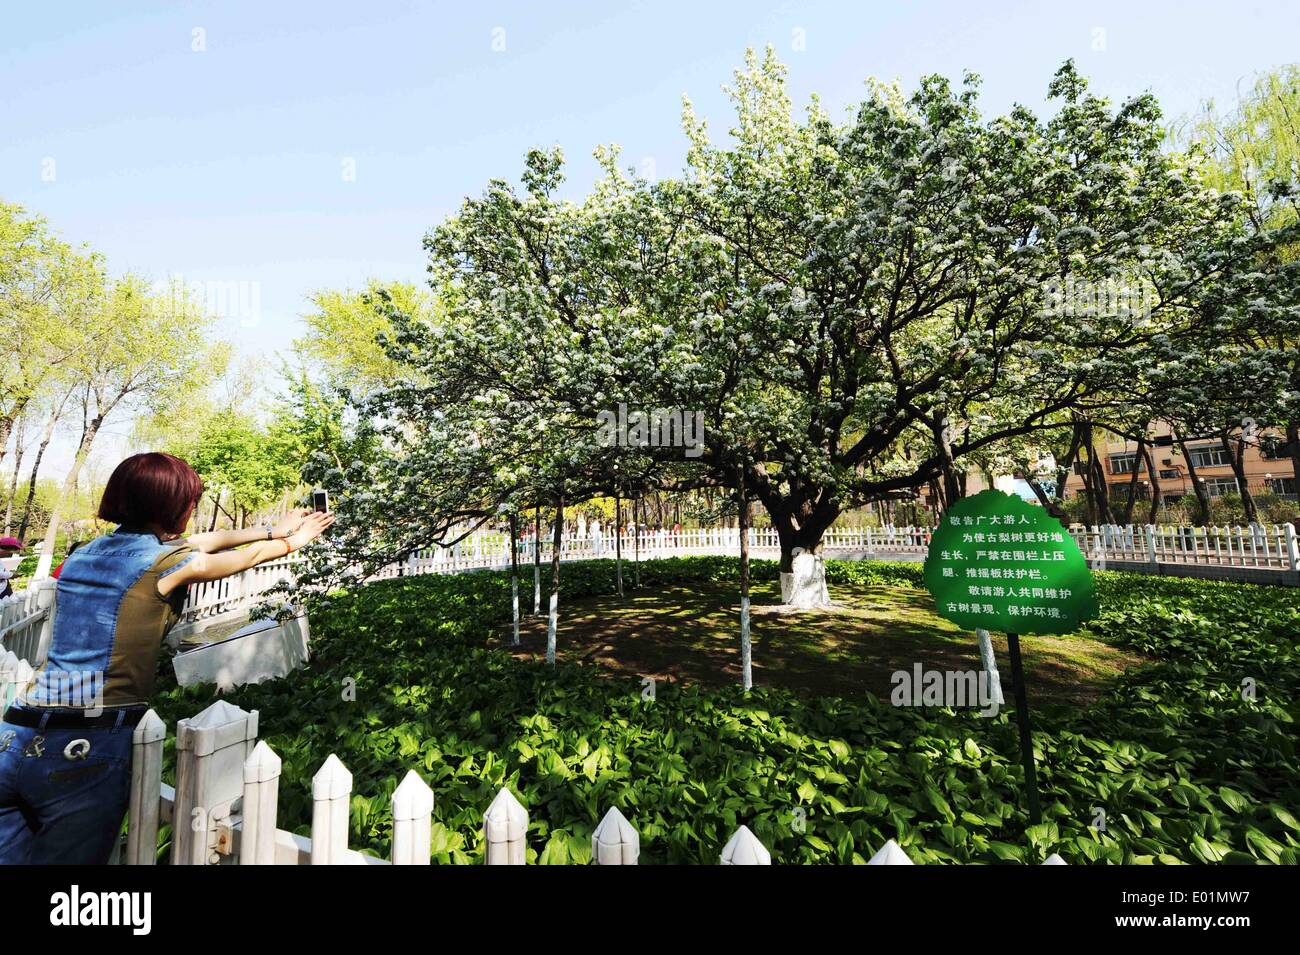 Harbin, China's Heilongjiang Province. 29th Apr, 2014. A citizen takes photos of a blossoming pear tree, which is over 120 years old, in Harbin, capital of northeast China's Heilongjiang Province, April 29, 2014. © Wang Jianwei/Xinhua/Alamy Live News - Stock Image